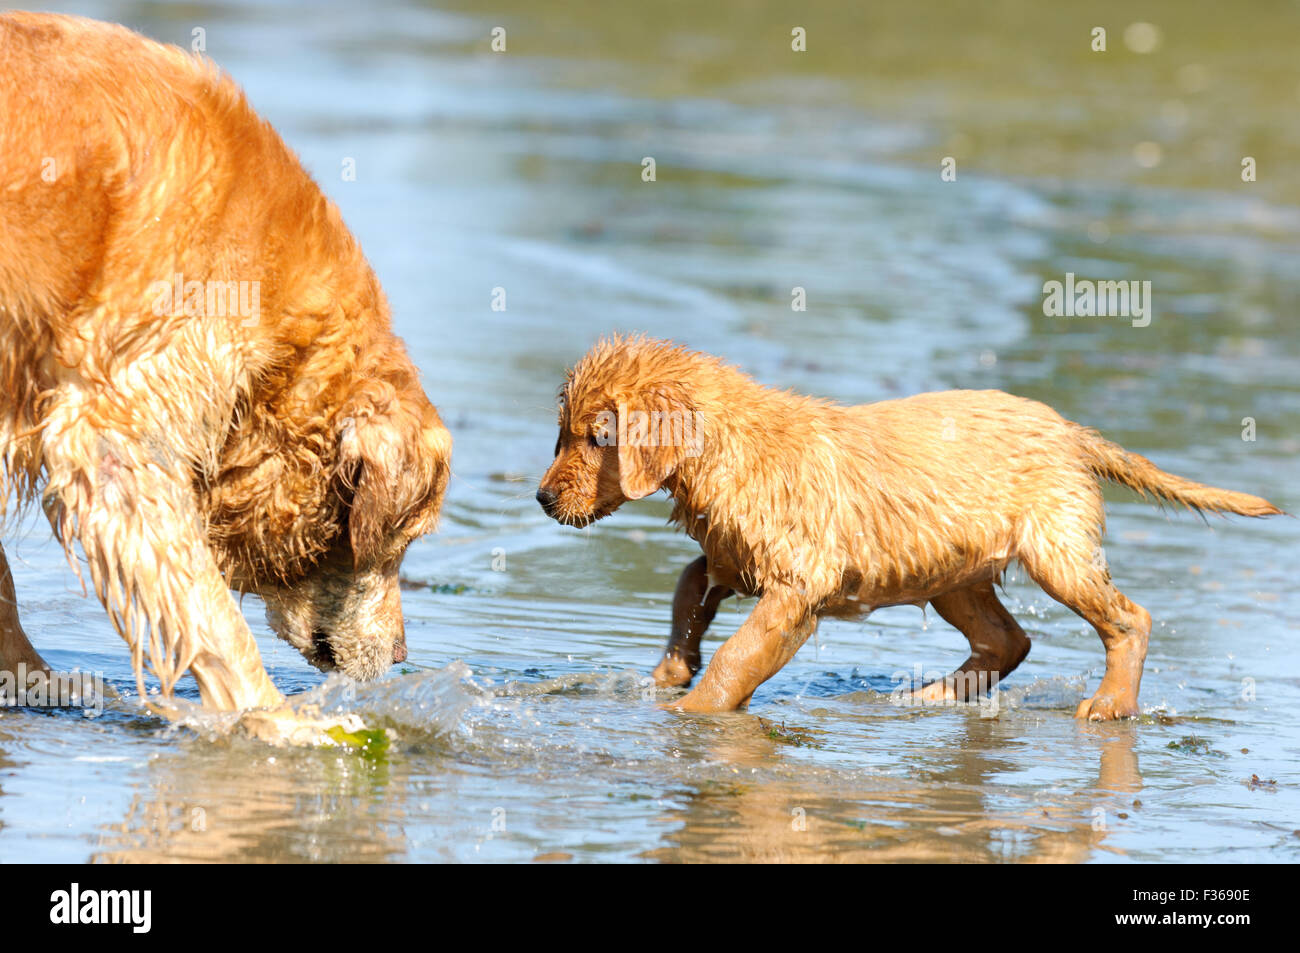 First Day At Beach For Golden Retriever Puppy Aged 9 Weeks With Older Stock Photo Alamy